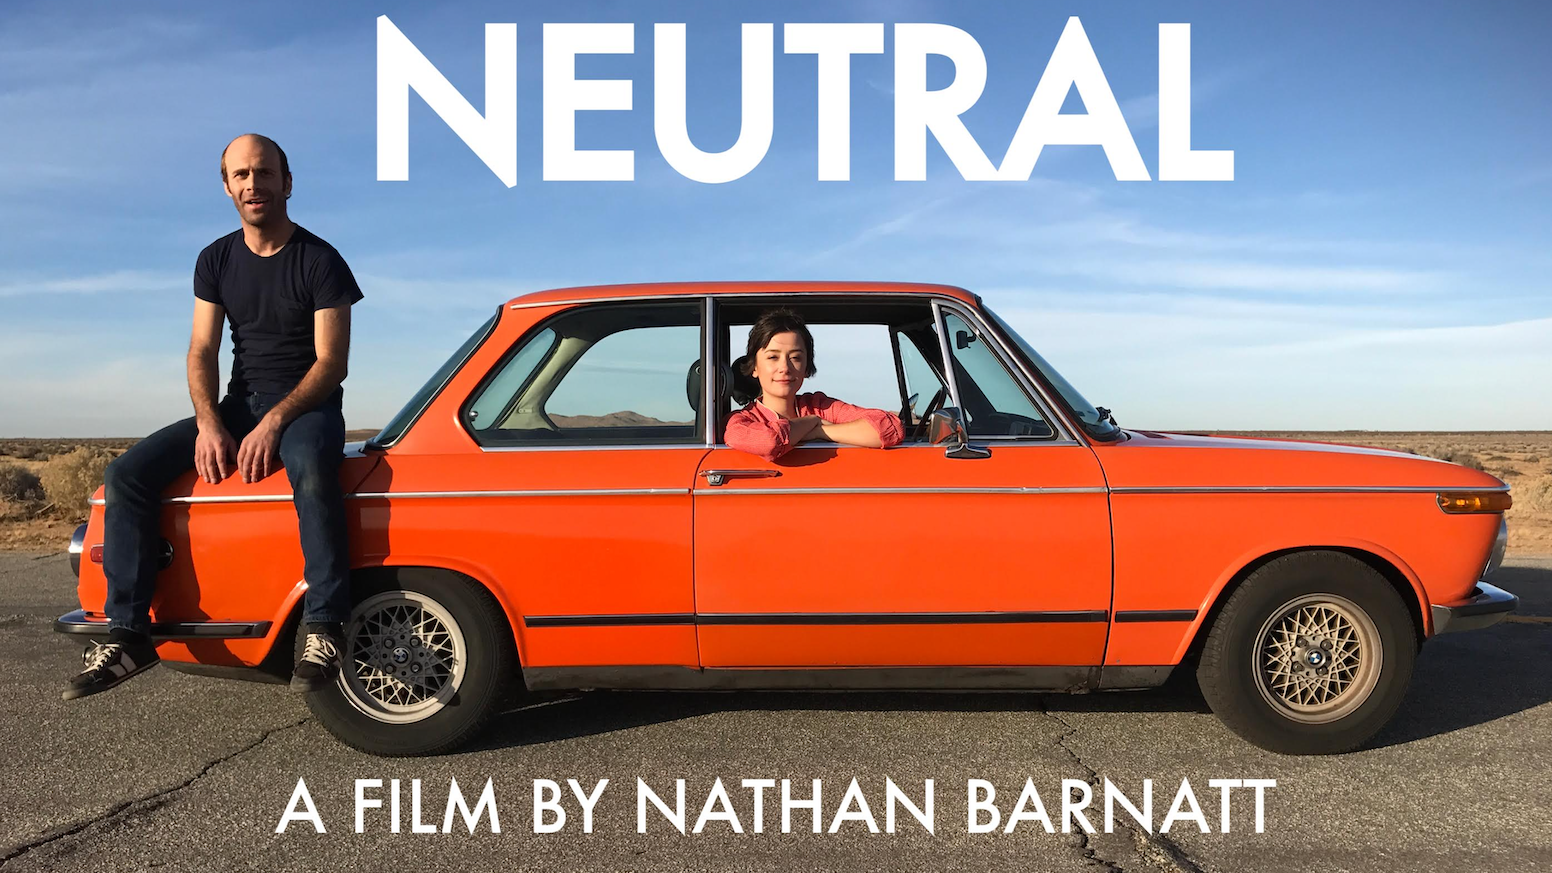 This film will feature physical comedy, action & the unique comedic style we've seen from Nathan before—as well as a new dramatic side.